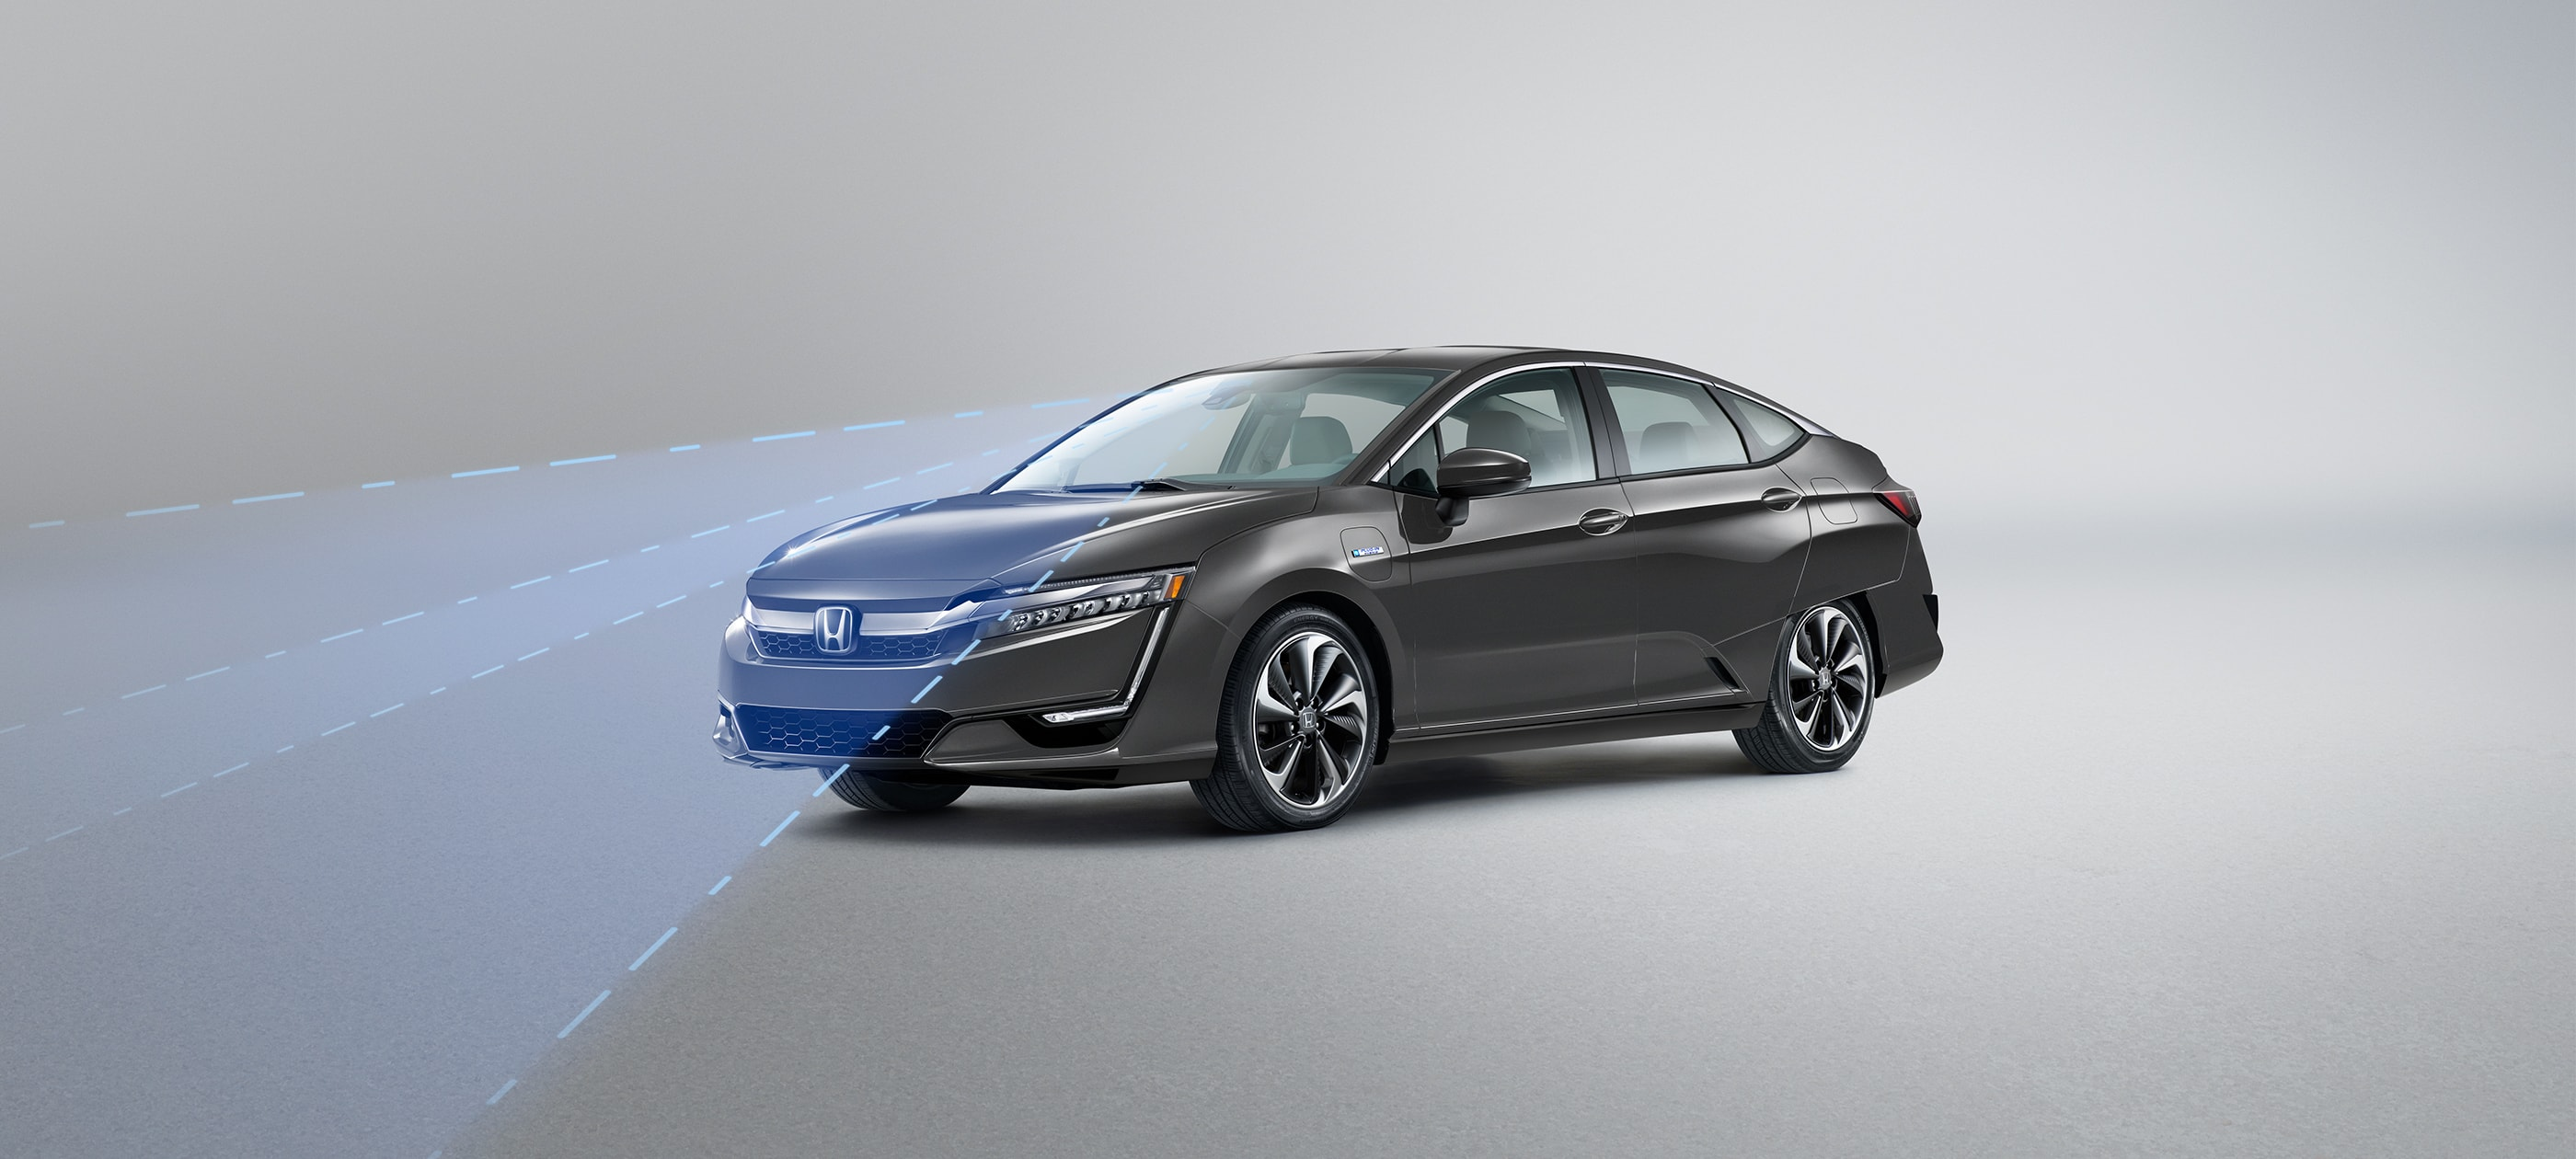 Front ¾ driver-side view of 2019 Honda Clarity PHEV in Modern Steel Metallic with Honda Sensing® illustrated demonstration.